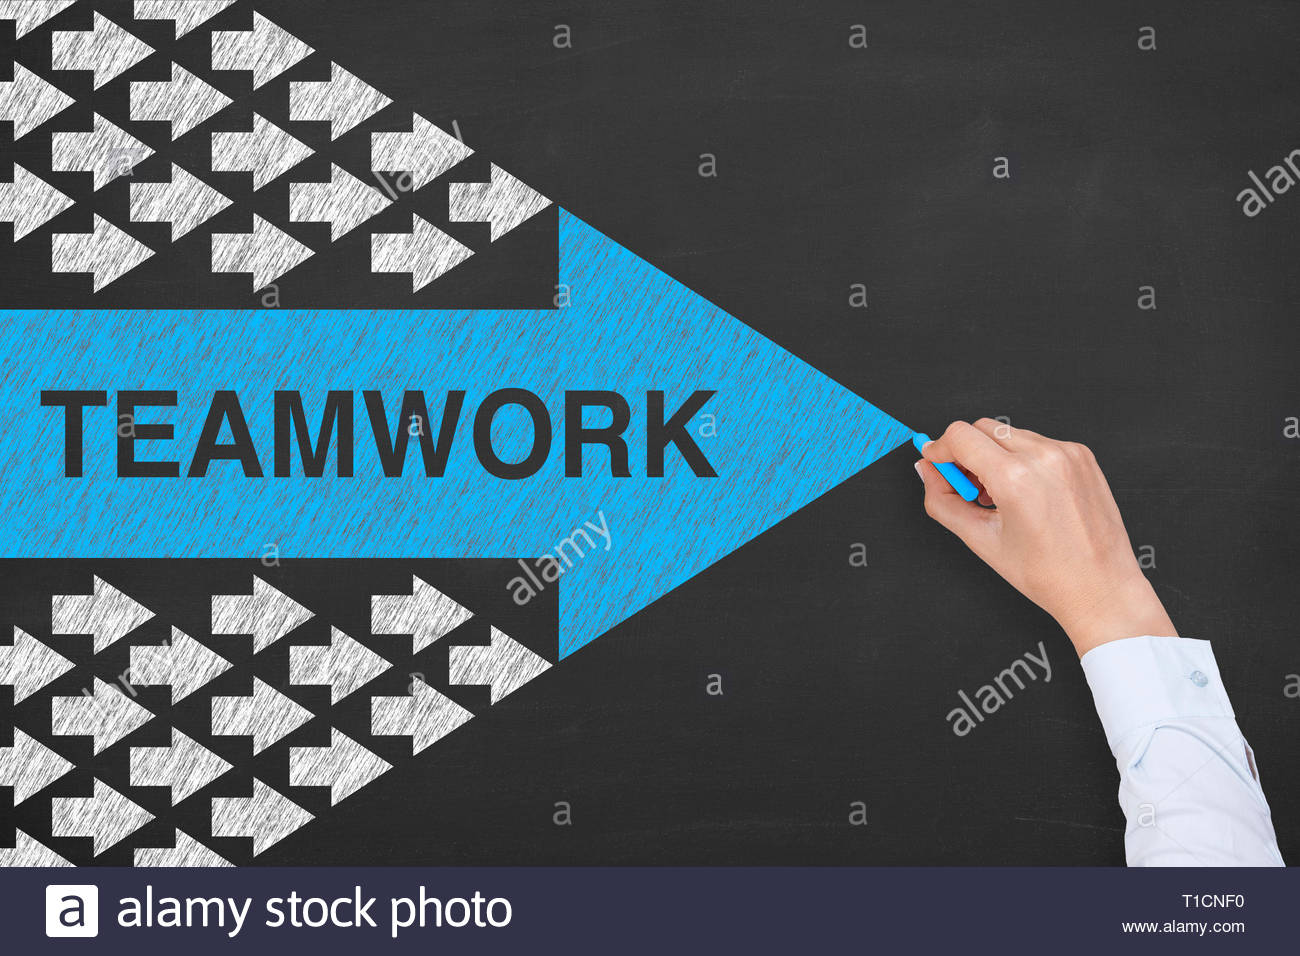 Teamwork Solutions Concepts on Blackboard Background - Stock Image